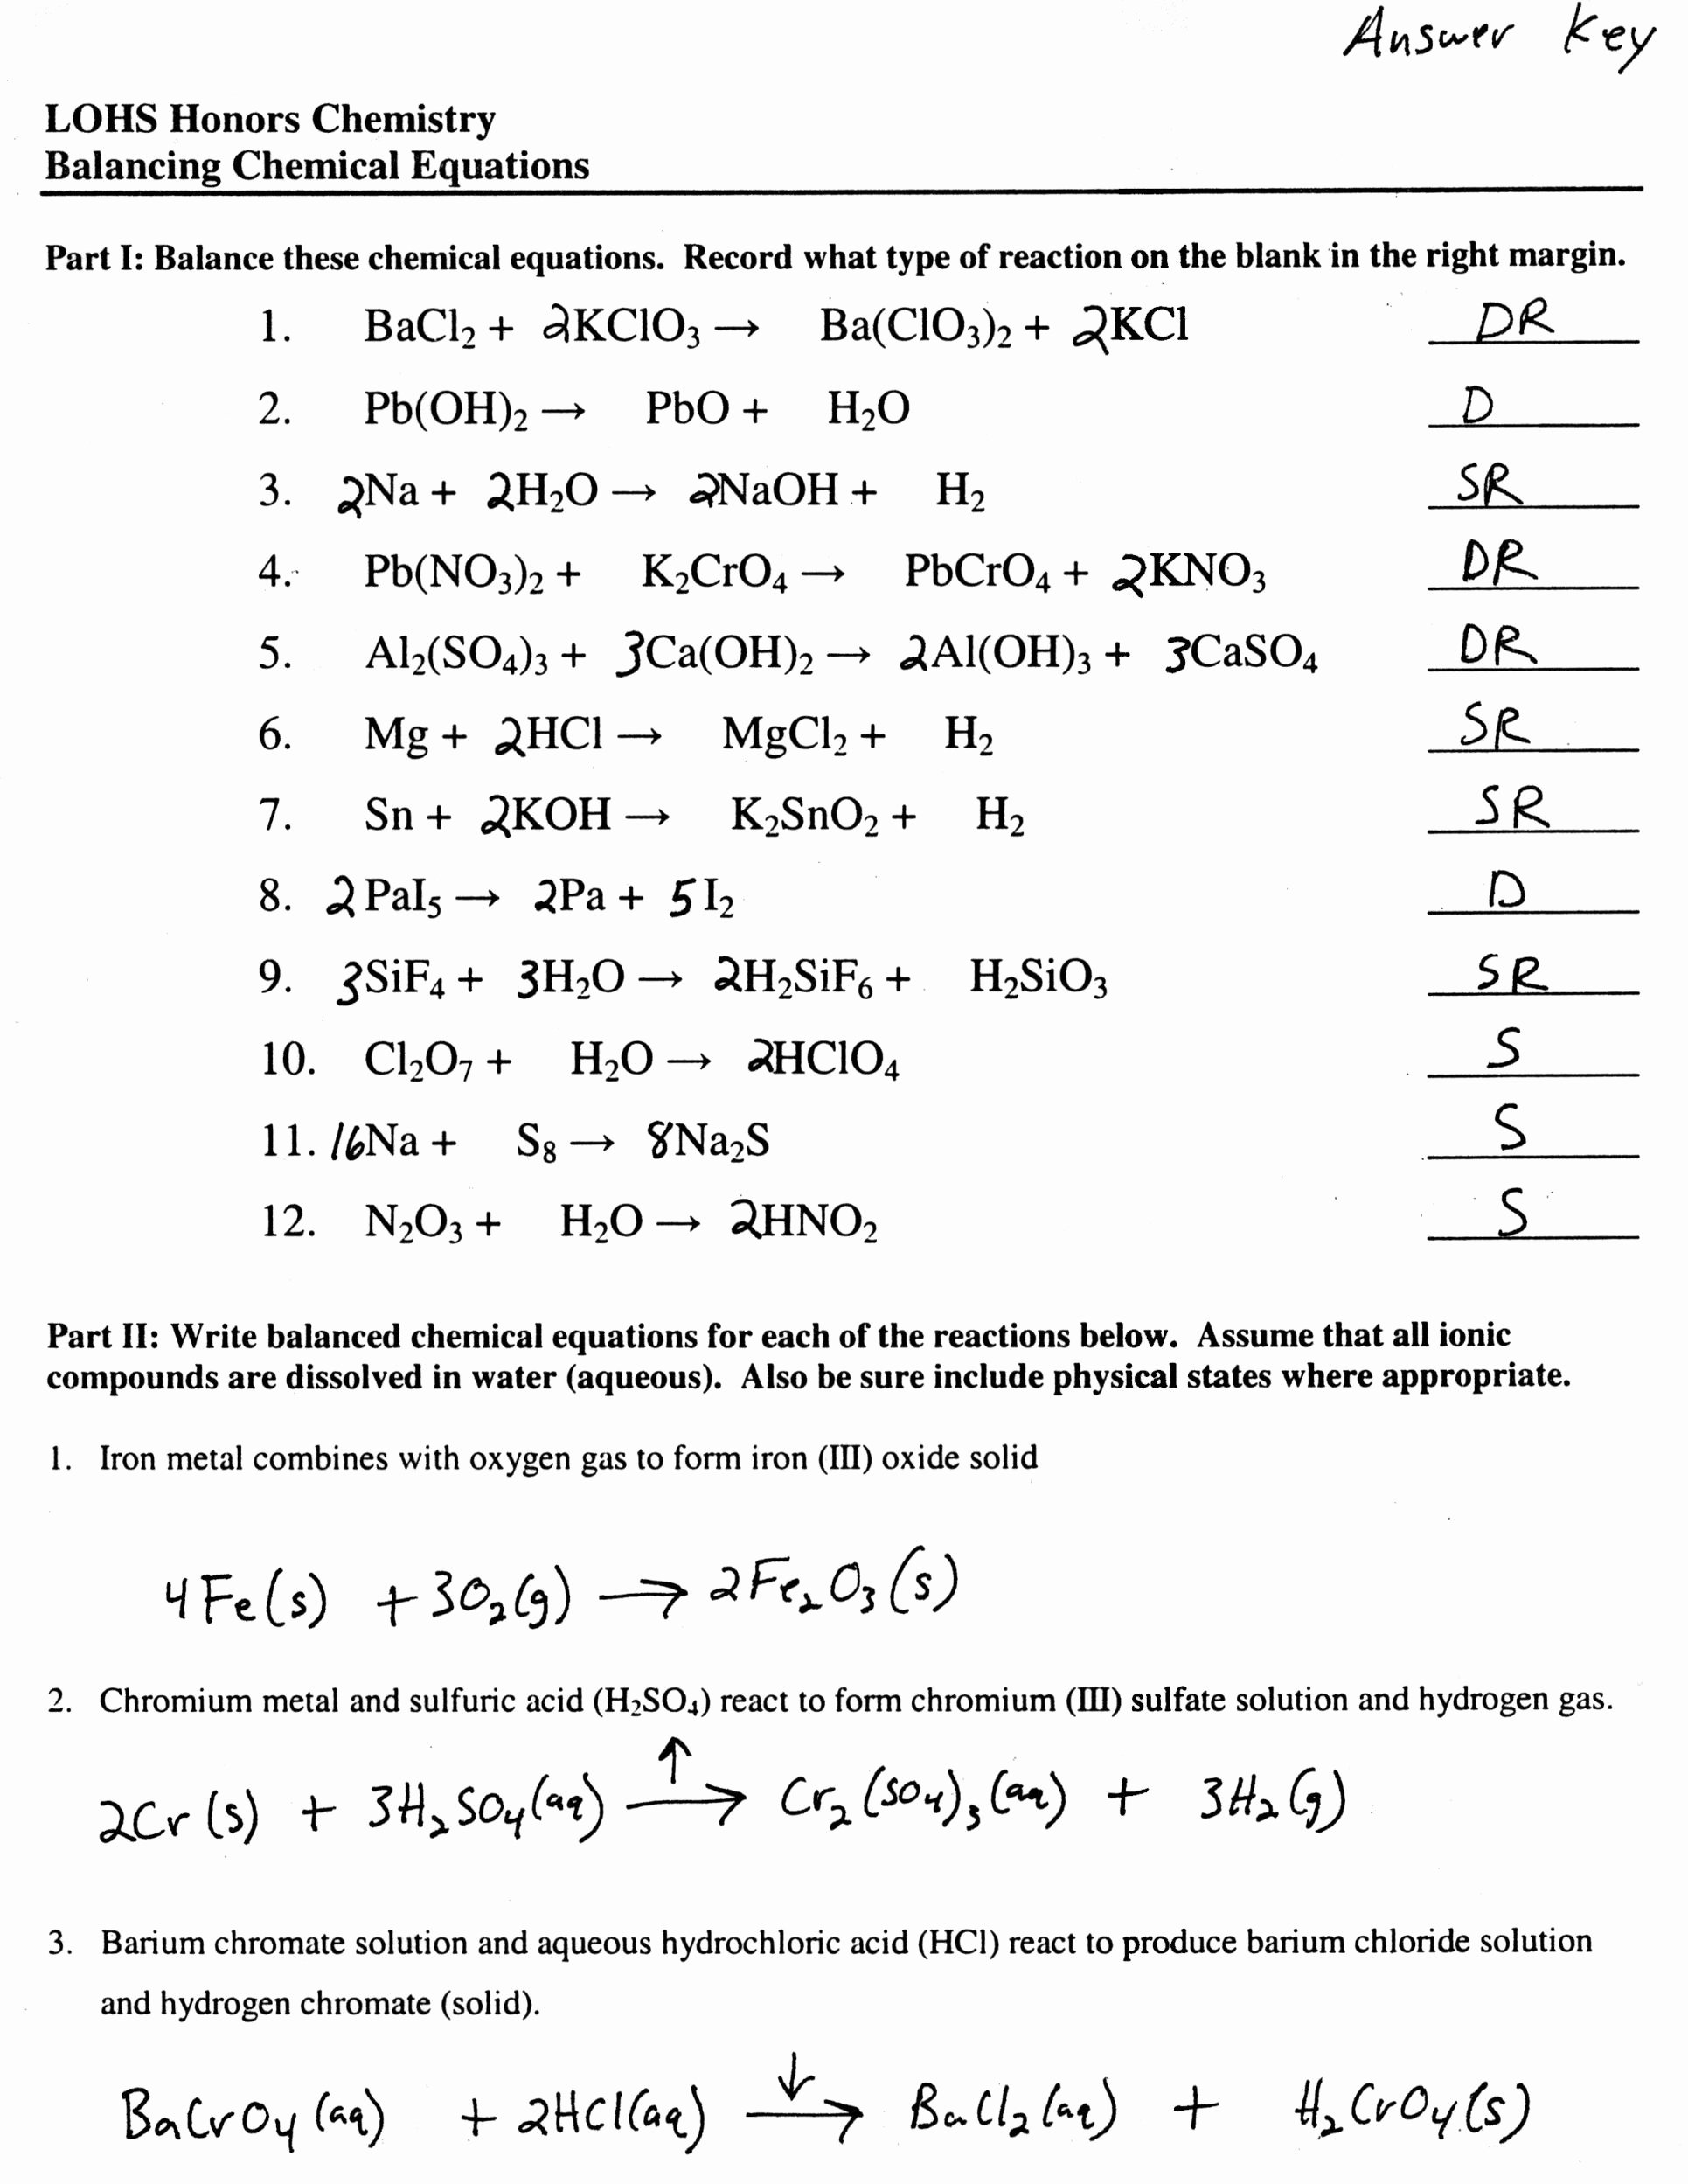 Balancing Nuclear Equations Worksheet Answers Lovely Balancing Nuclear Equations Worksheet